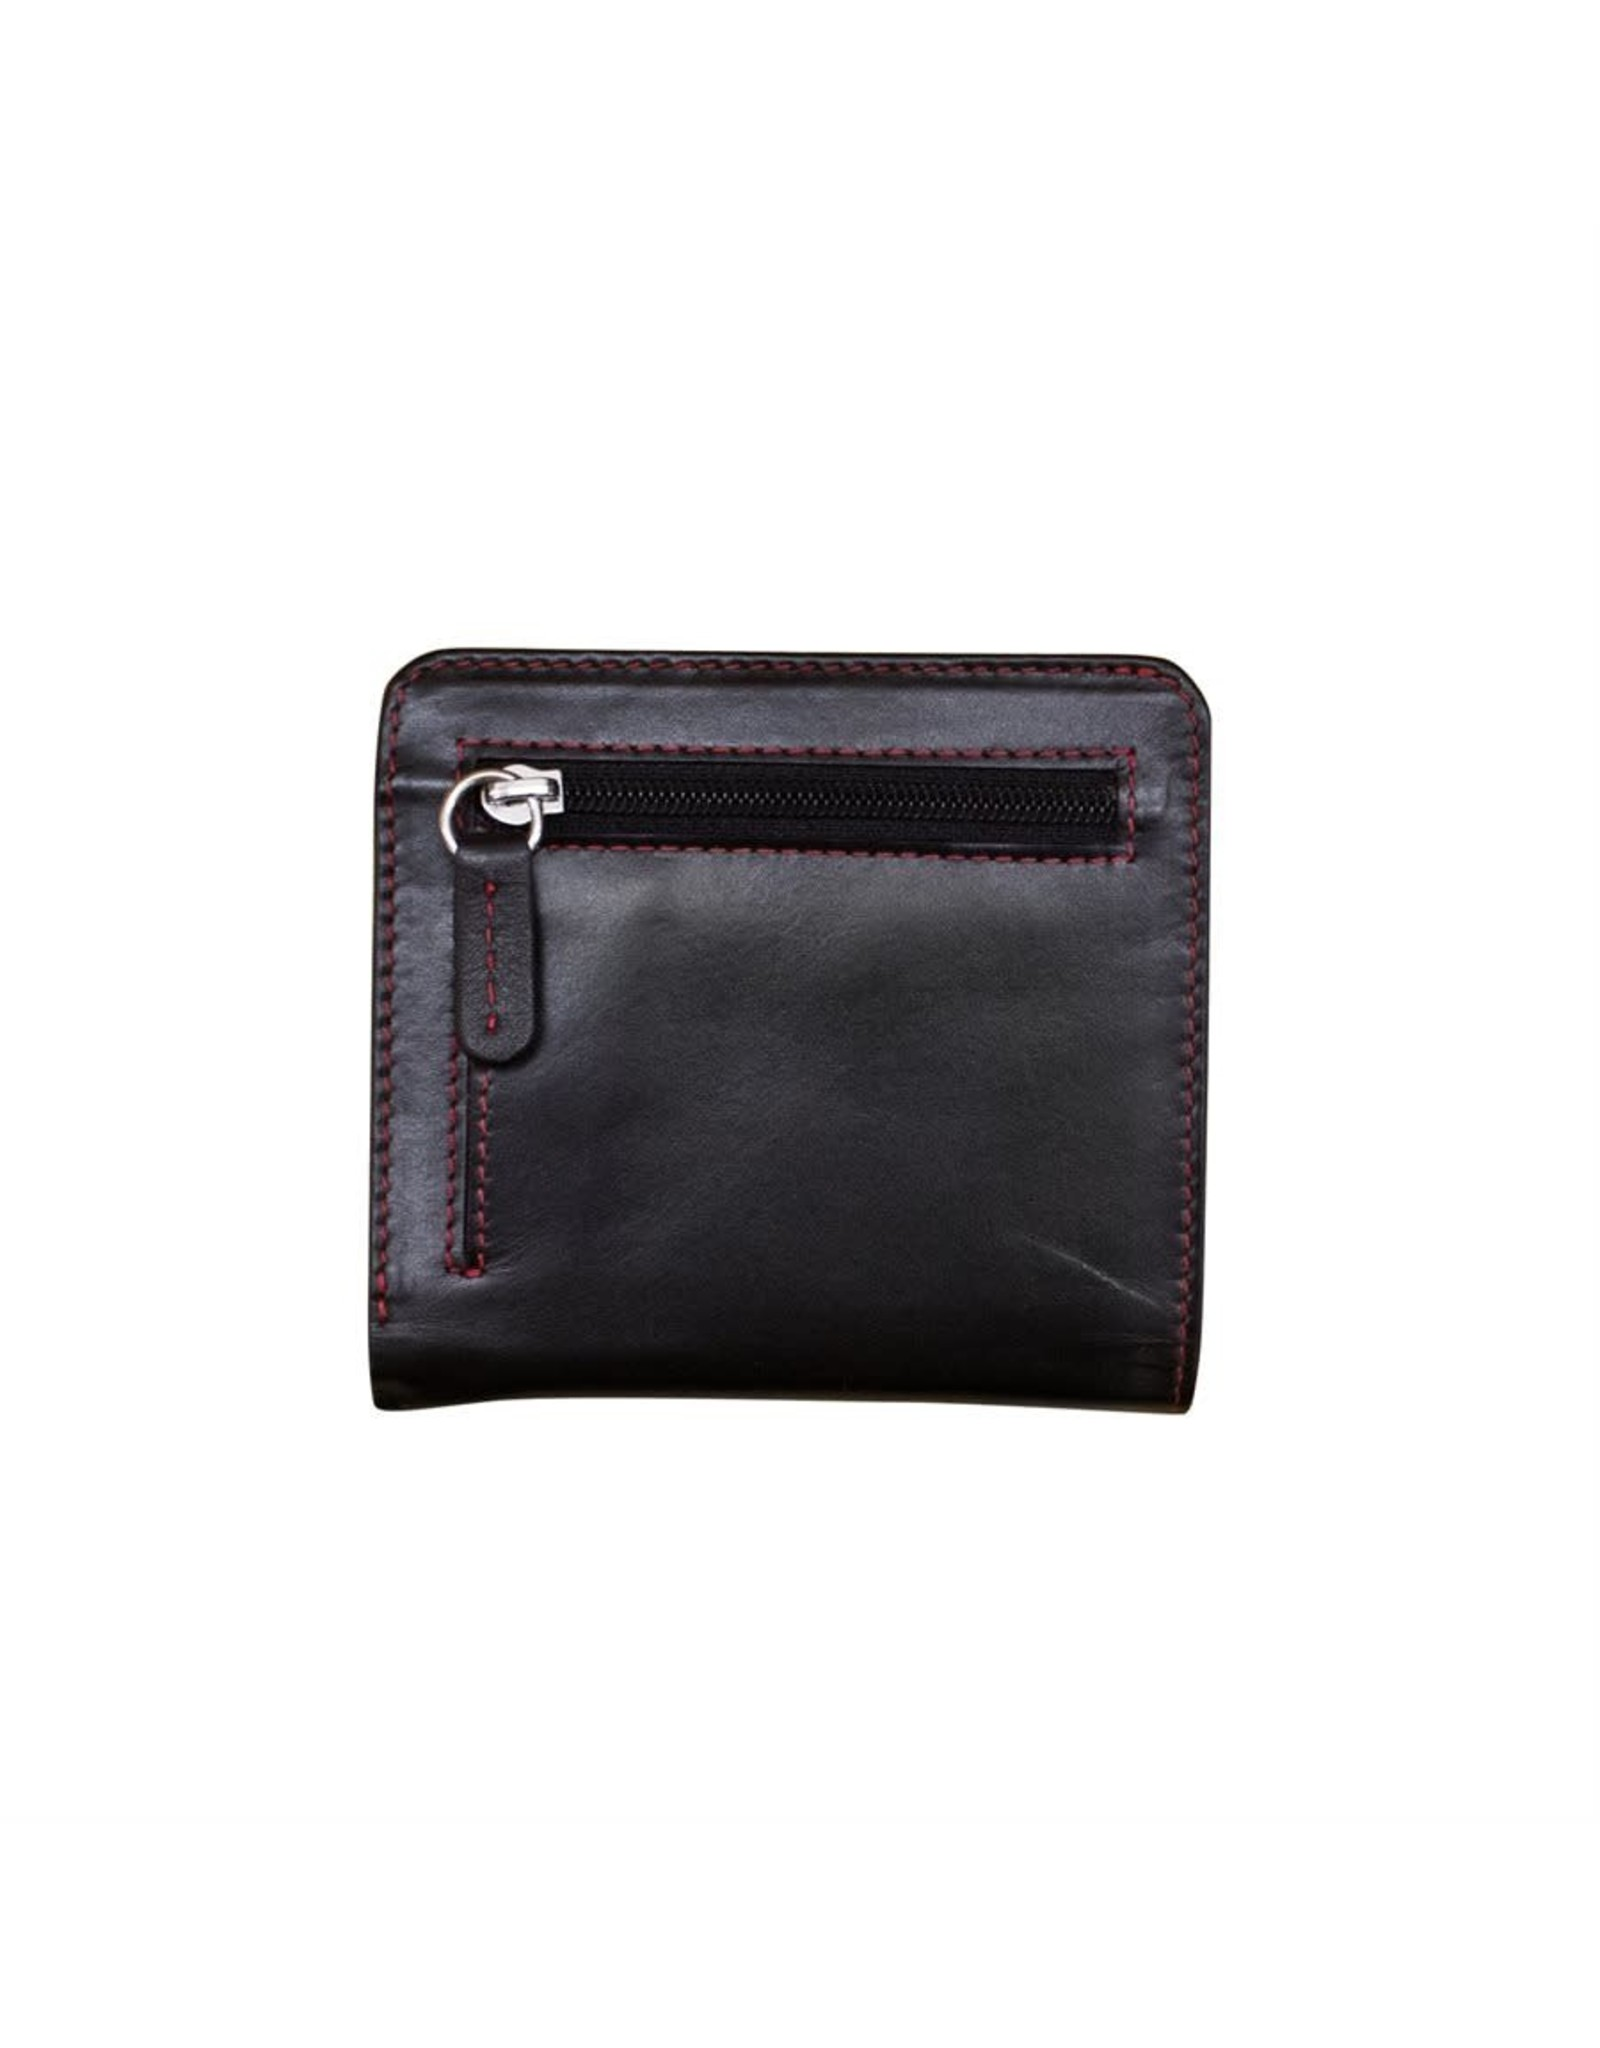 Leather Handbags and Accessories 7831 Black/Red - RFID Mini Wallet Two Toned